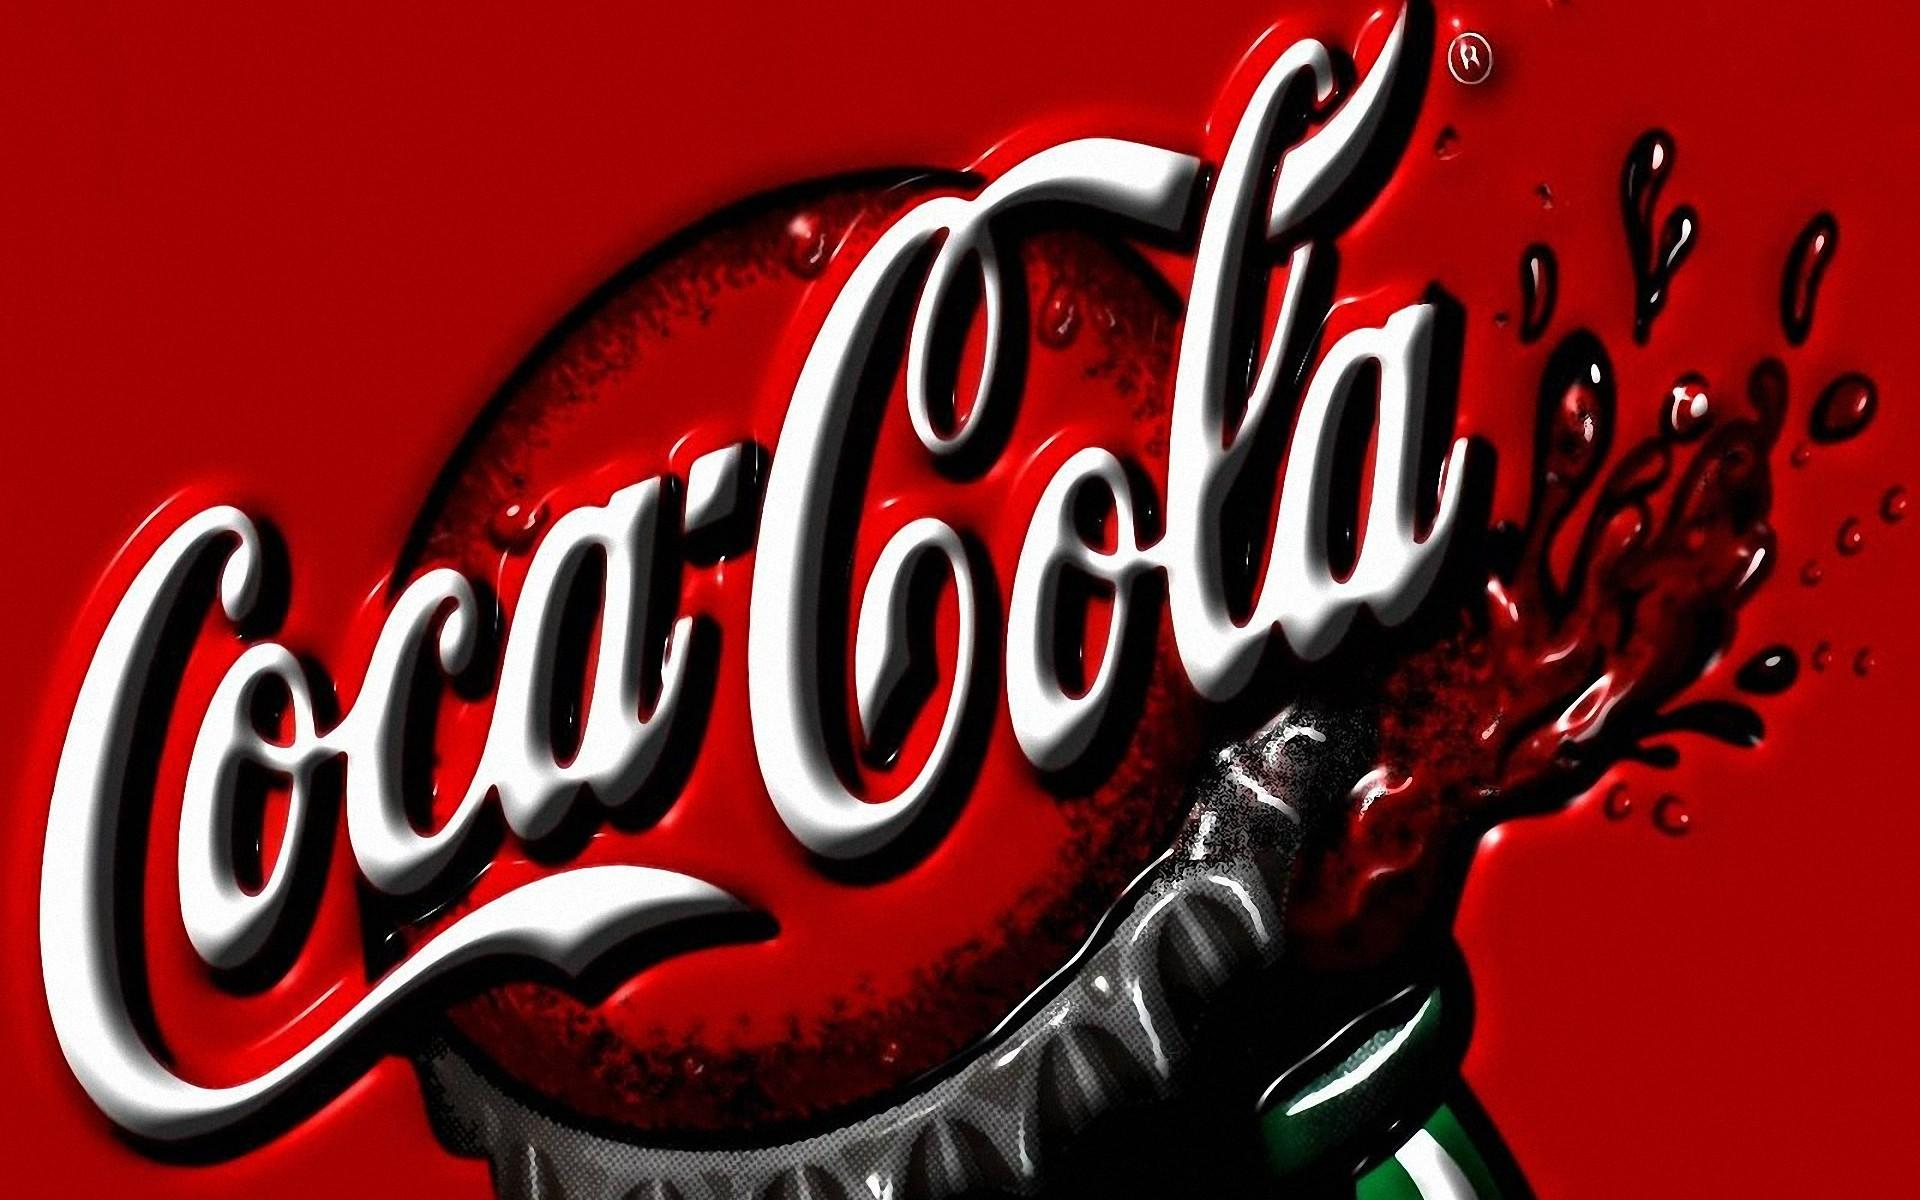 Coca cola christmas wallpaper ForWallpapercom 1024x768